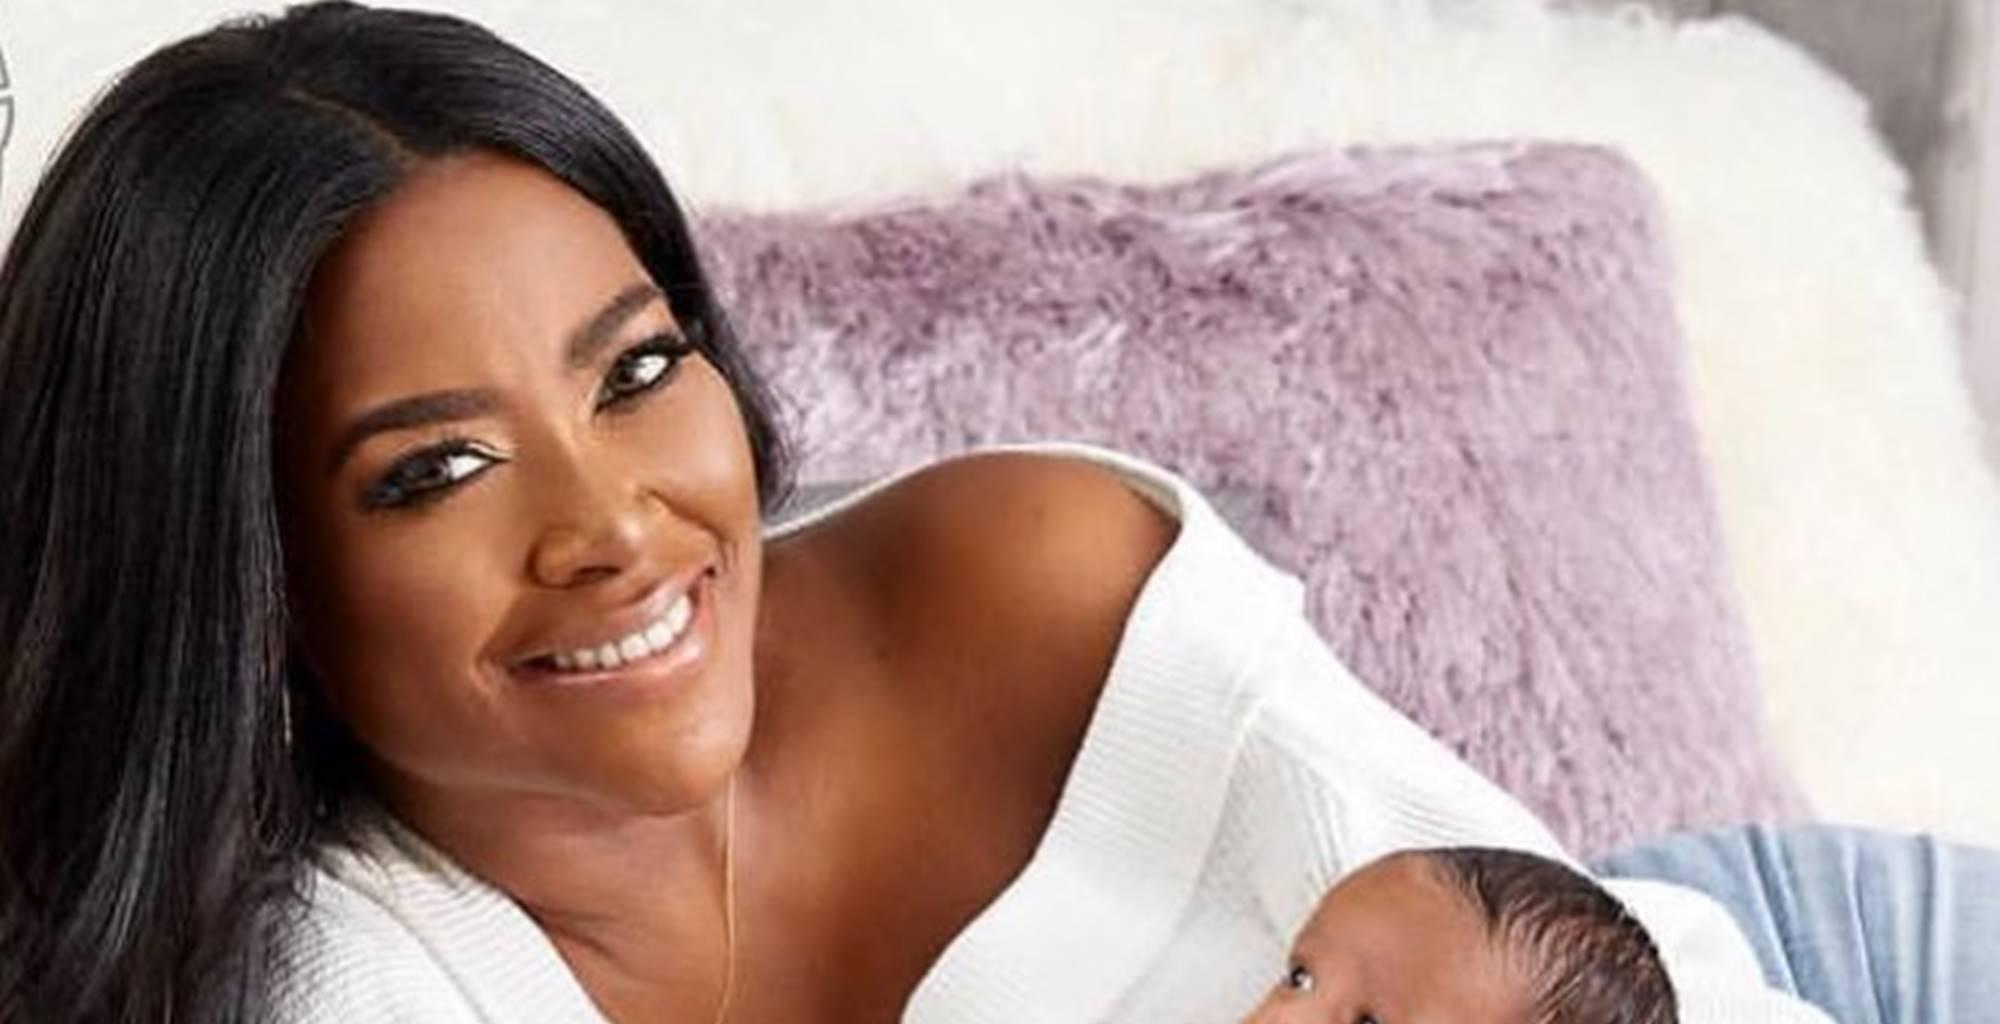 Kenya Moore Shares A Photo With Baby Brooklyn Right After Her Birth - Witness The First Time Kenya Held Her Baby